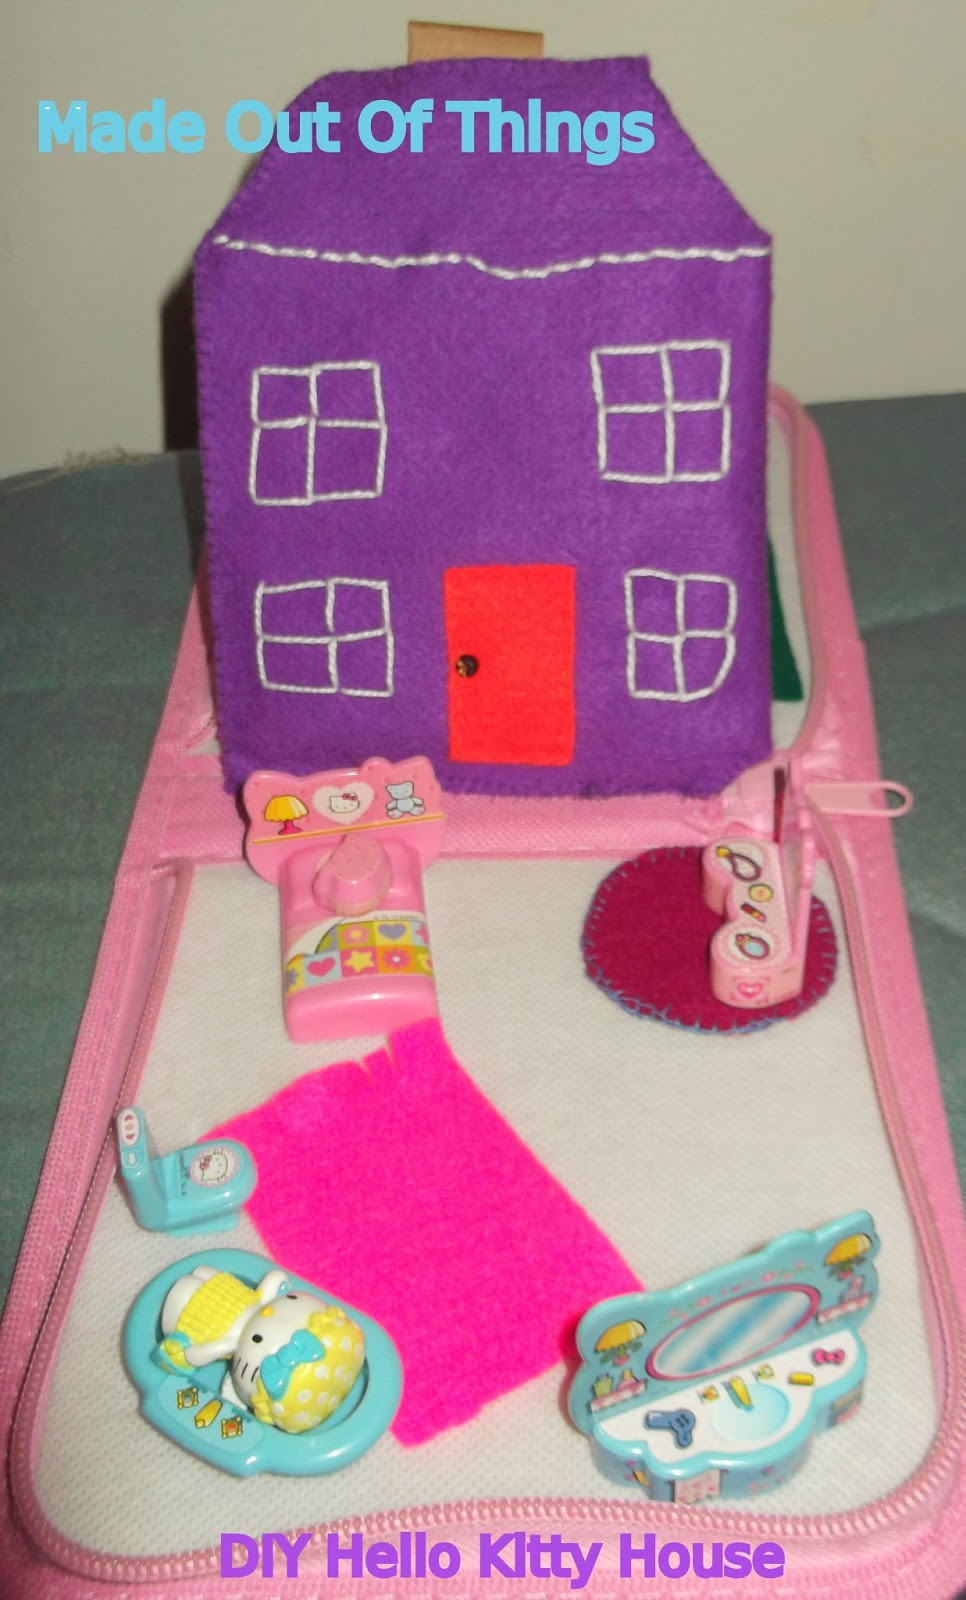 Made Out Of Things Diy Hello Kitty House